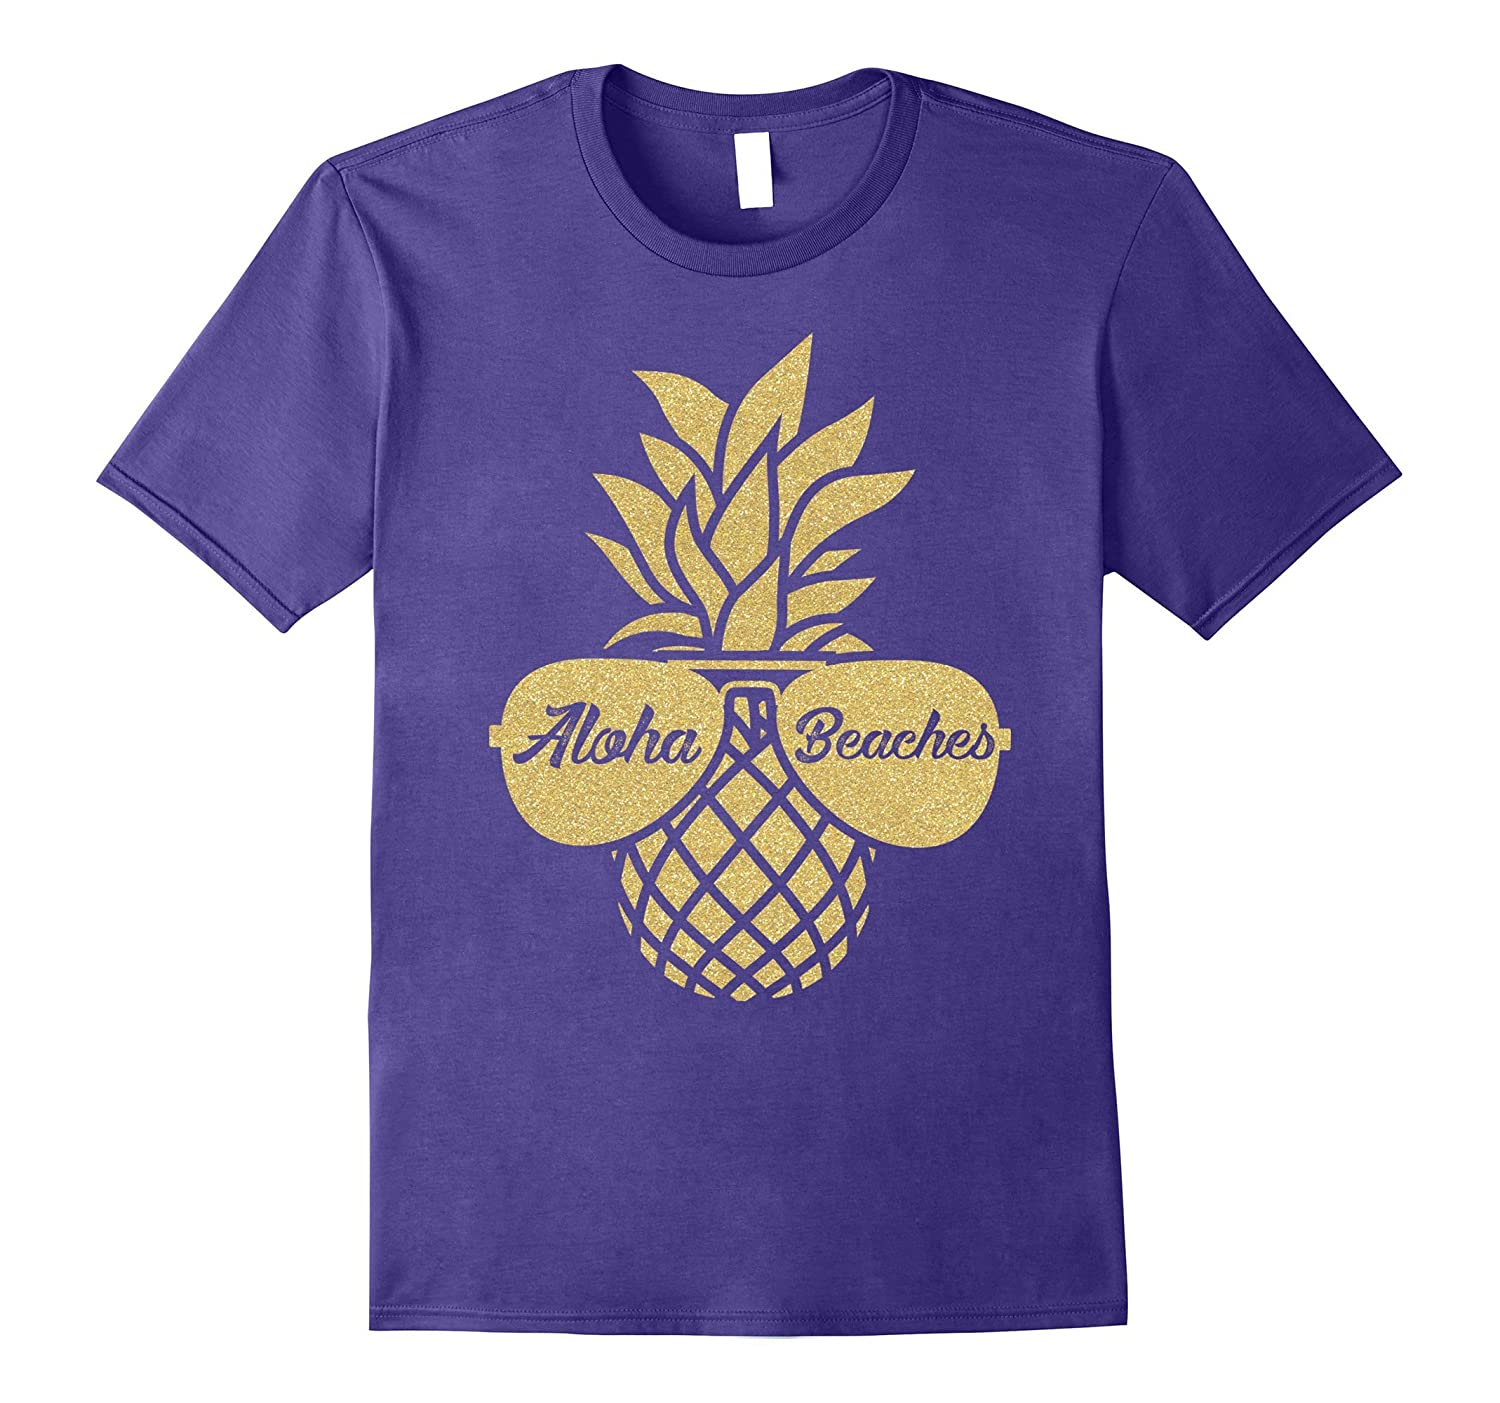 Aloha Beaches Pineapple Sunglasses Hawaiian Shirt - Wedding-T-Shirt